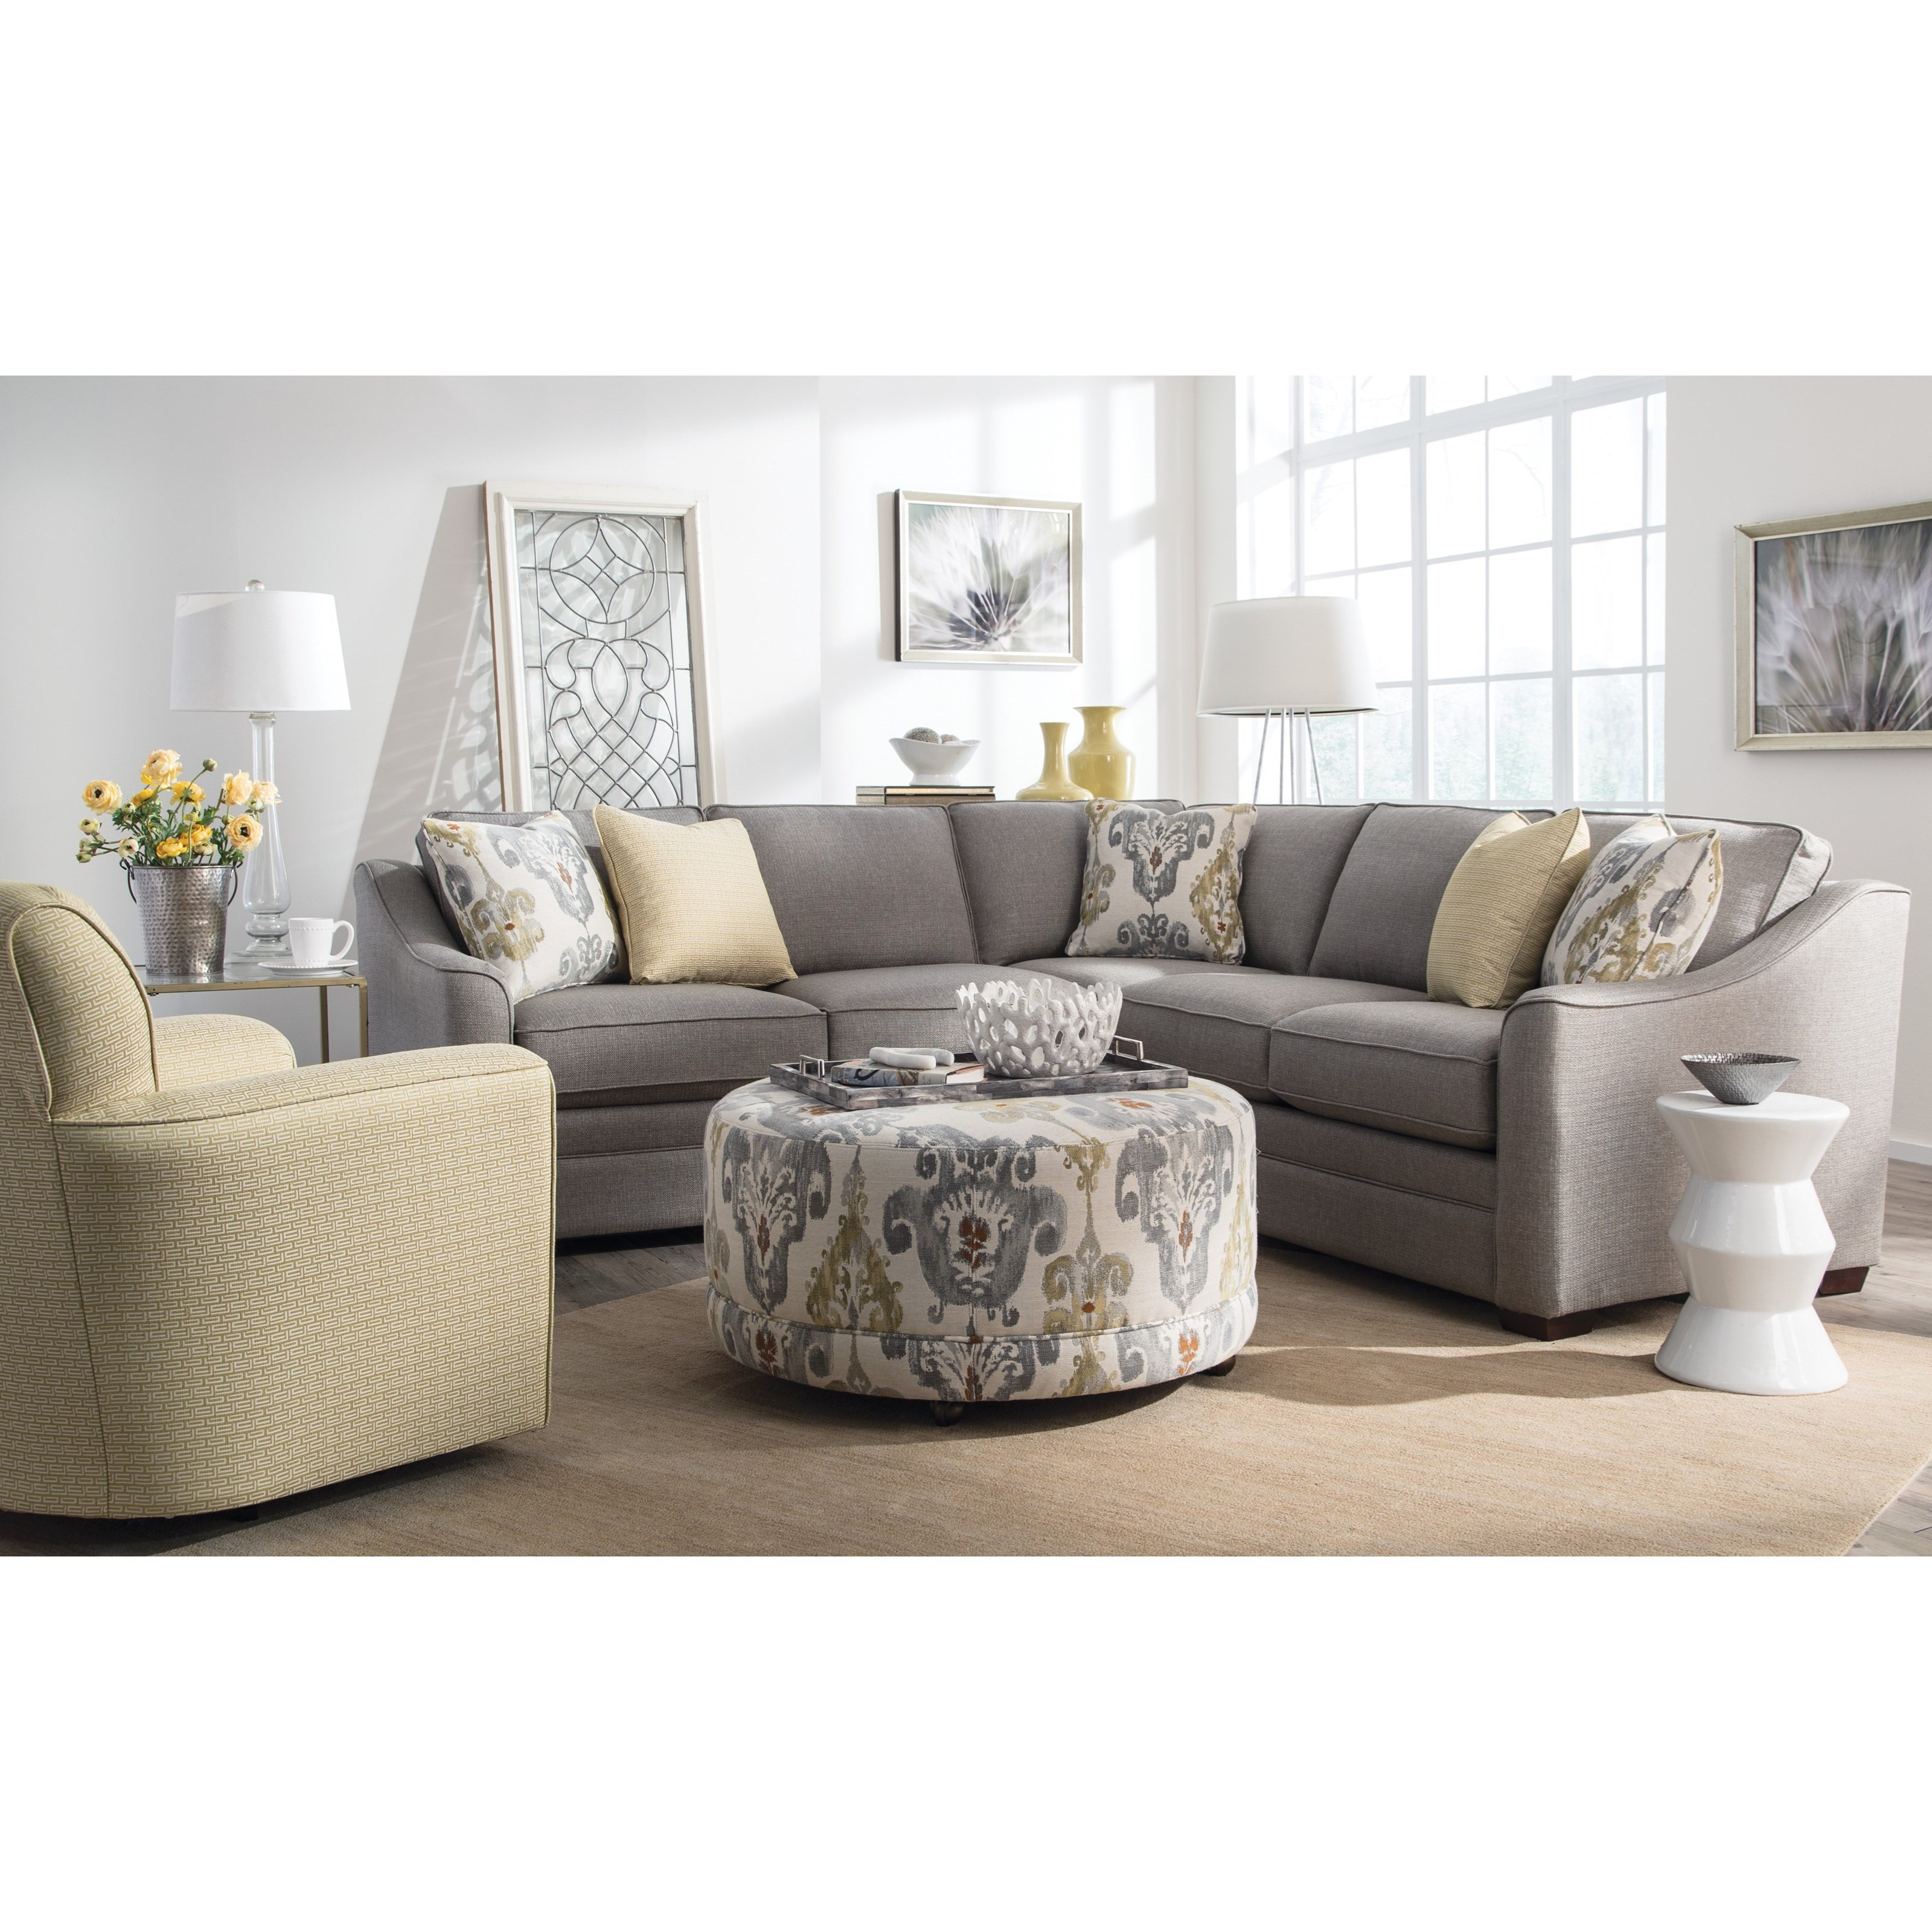 F9 Custom Collection Living Room Group by Craftmaster at Goods Furniture